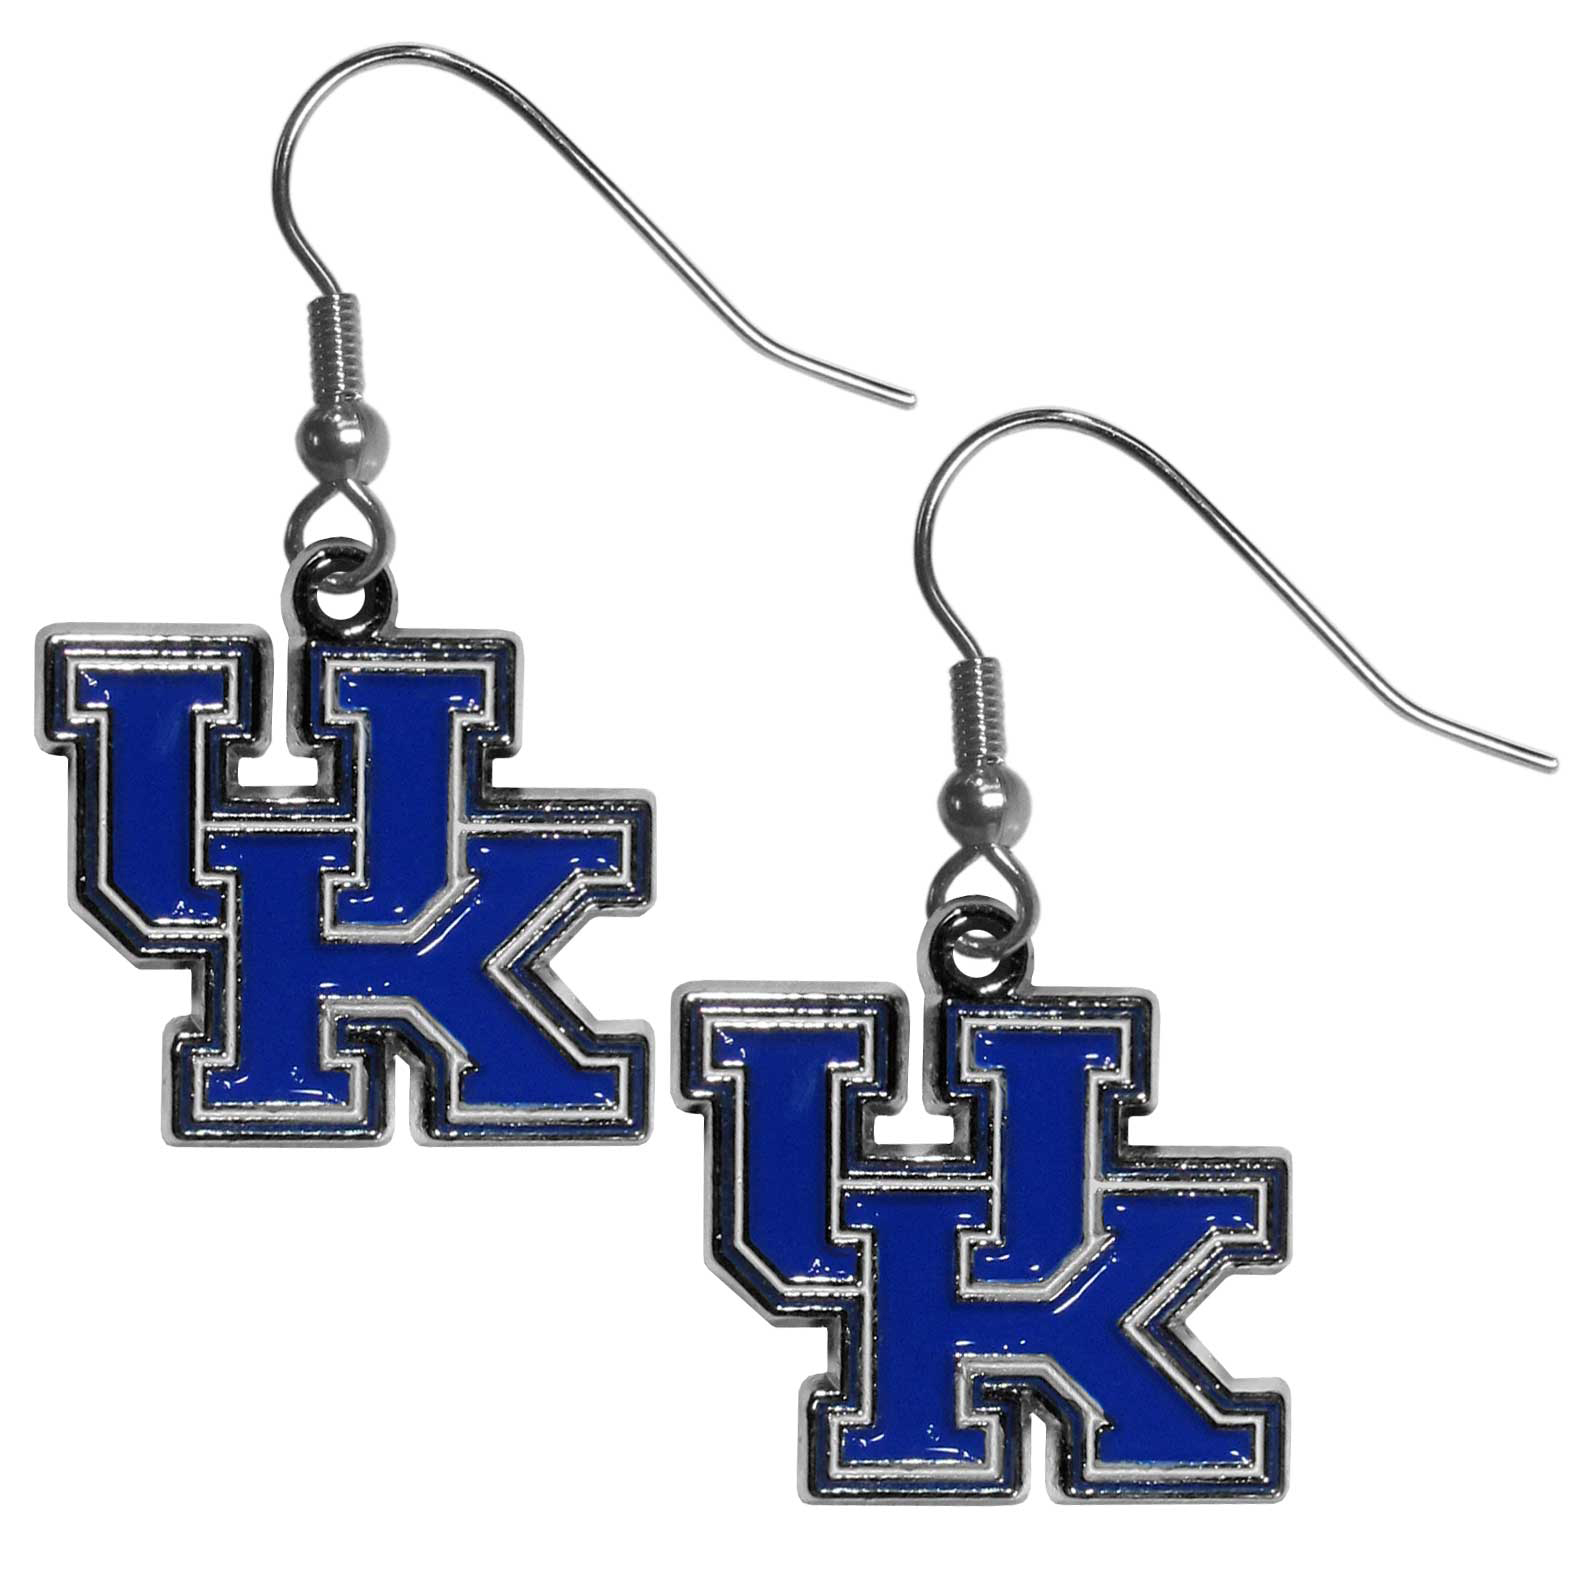 Kentucky Wildcats Chrome Dangle Earrings - Our officially licensed collegiate dangle earrings have fully cast Kentucky Wildcats charms with exceptional detail and a hand enameled finish. The earrings have a high polish nickel free chrome finish and hypoallergenic fishhook posts.